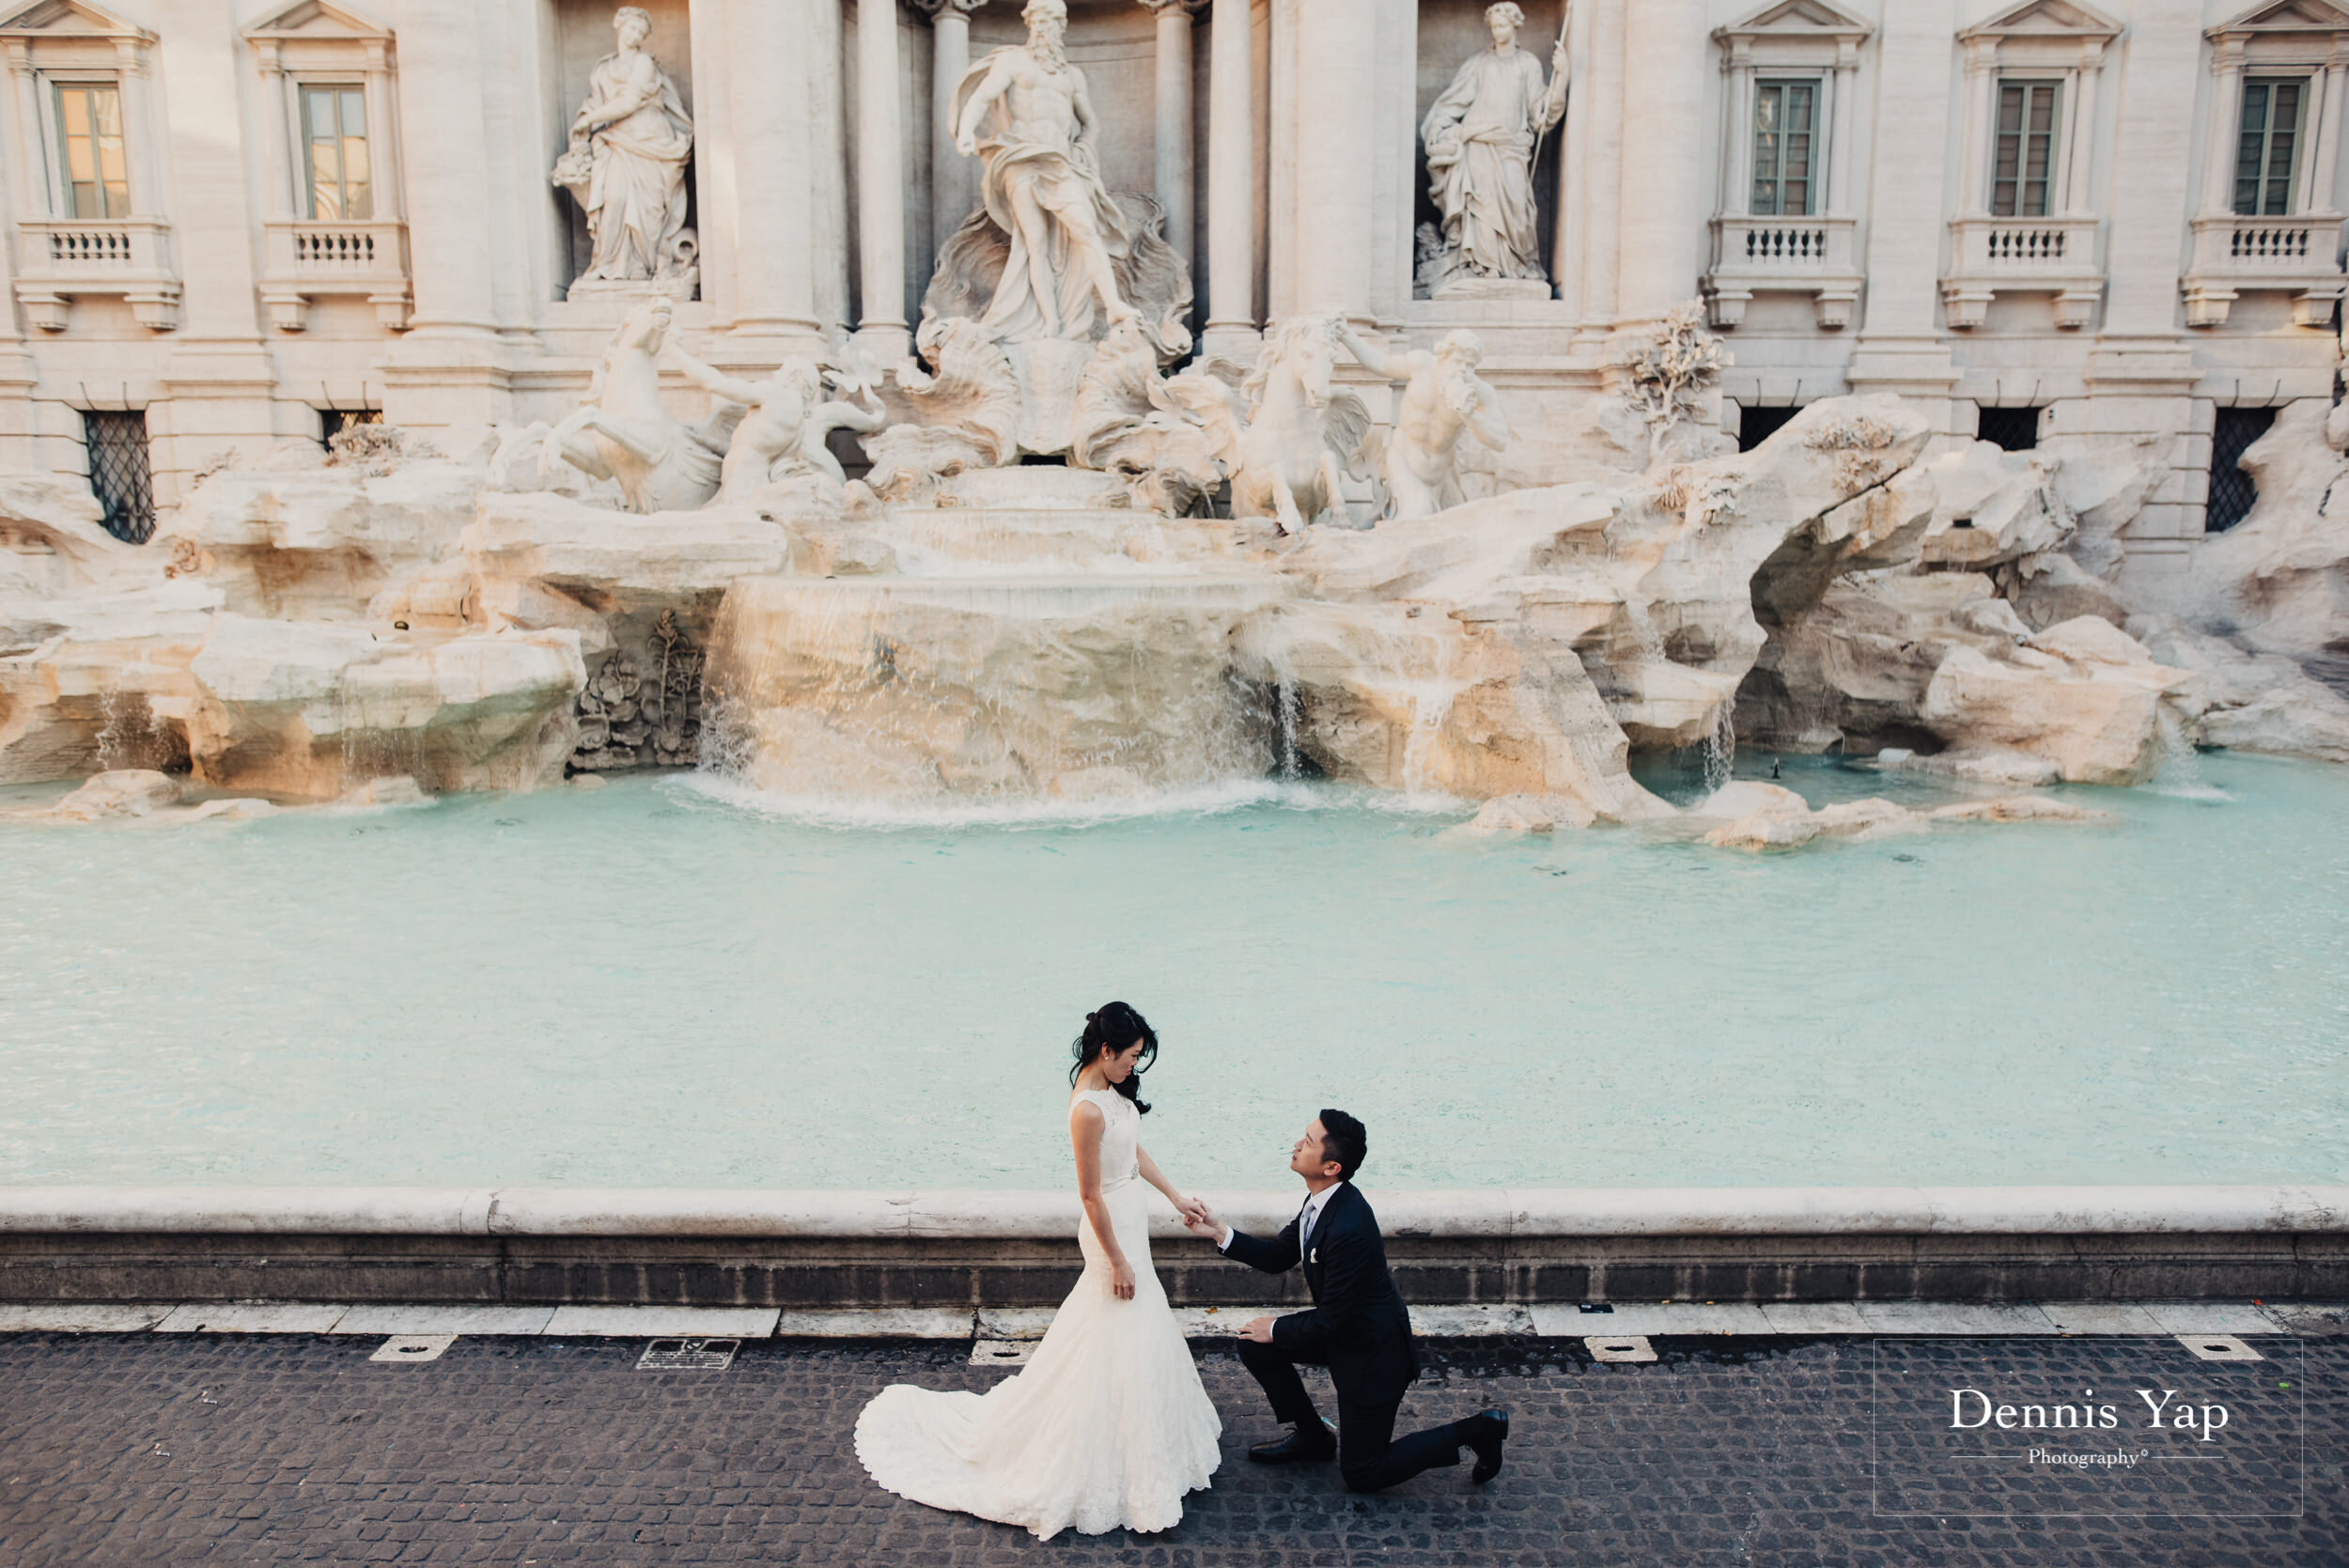 alex chloe pre wedding rome italy dennis yap photography overseas portrait classic beloved-111.jpg